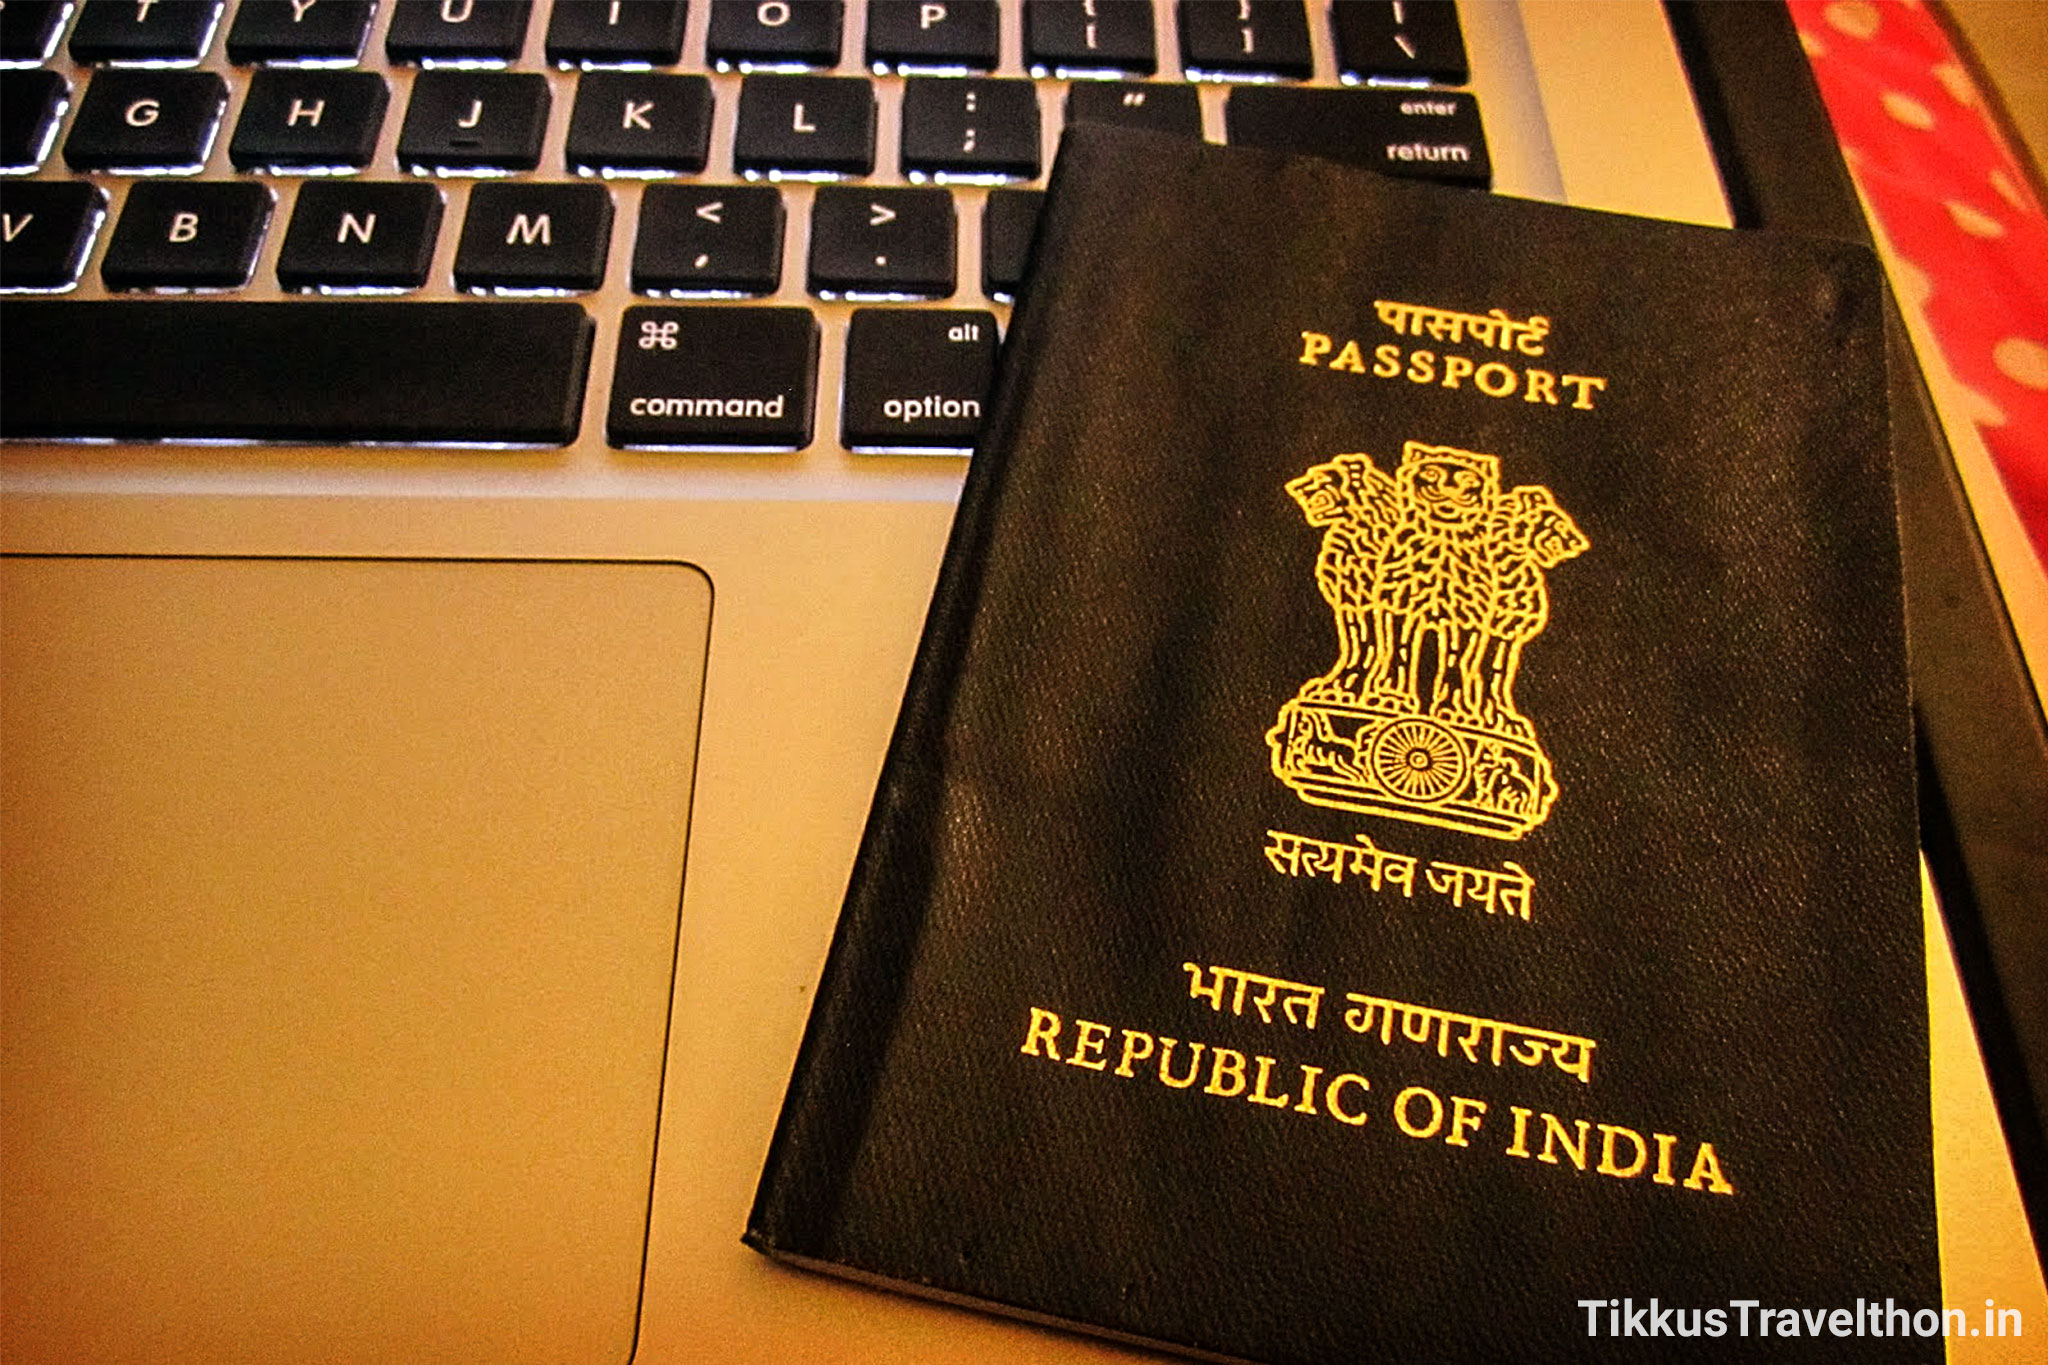 i_indianpassport_2